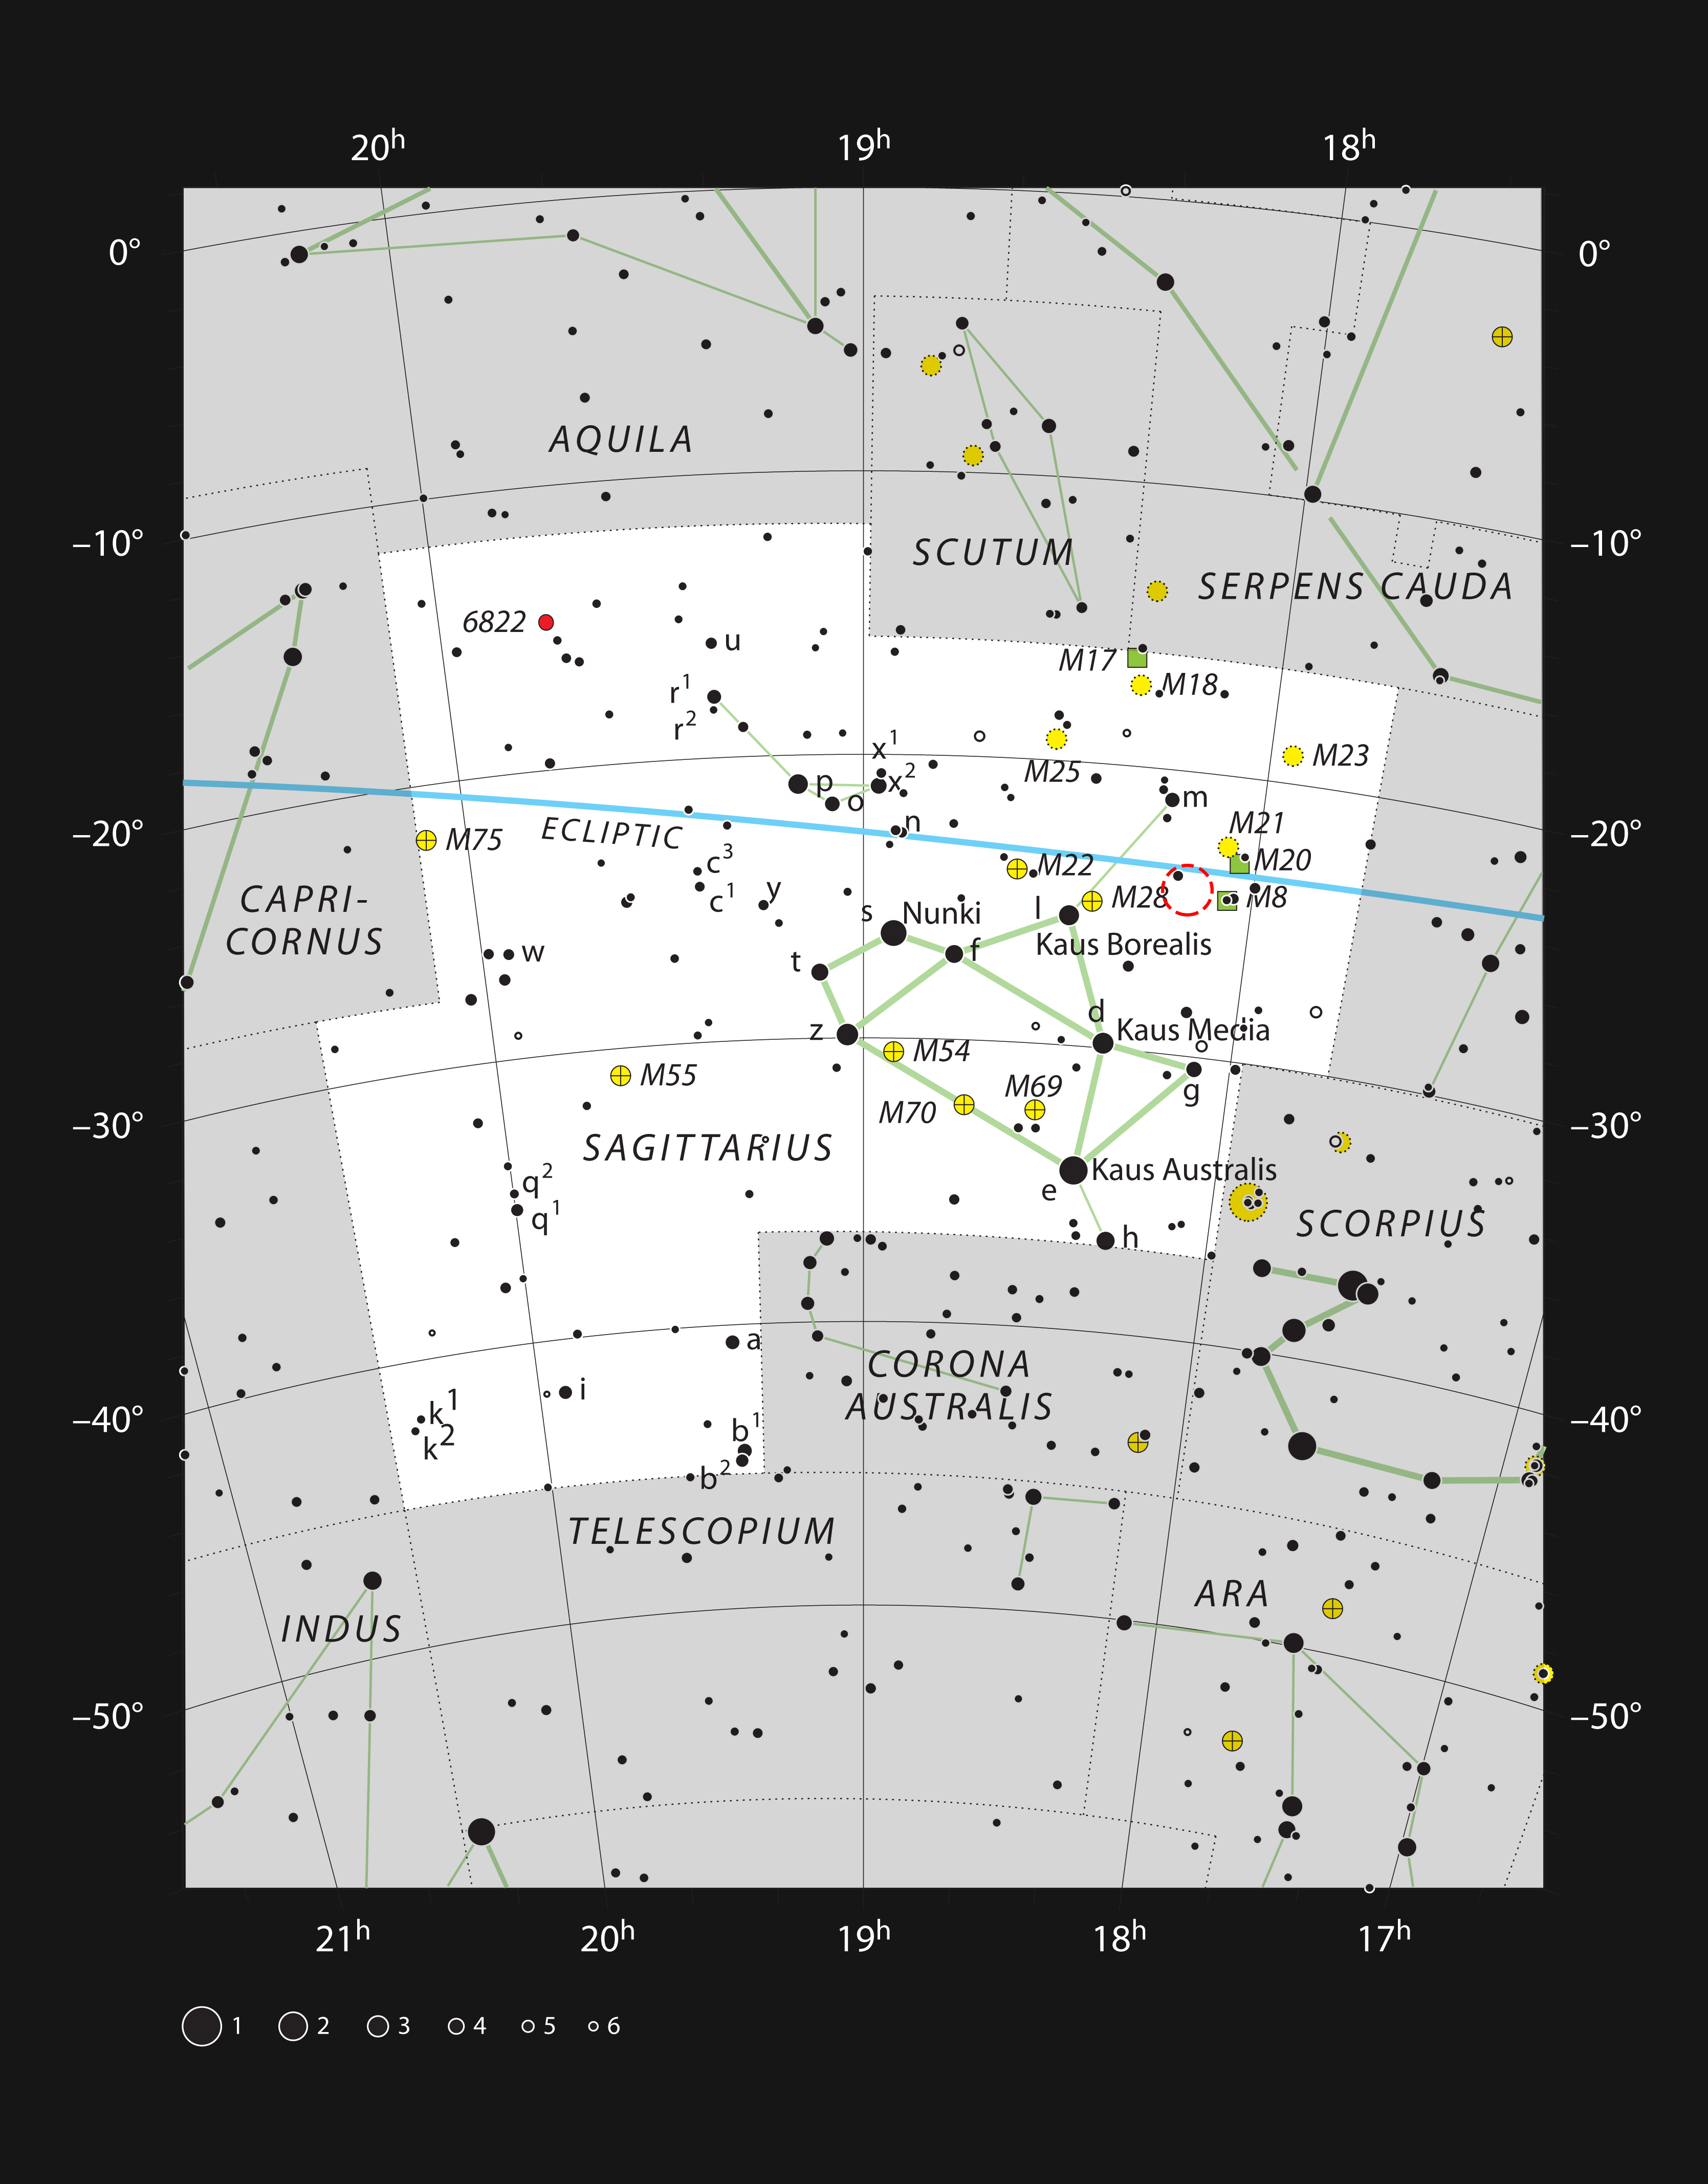 Number The Stars Plot Diagram: The star formation region NGC 6559 in the constellation of ,Chart